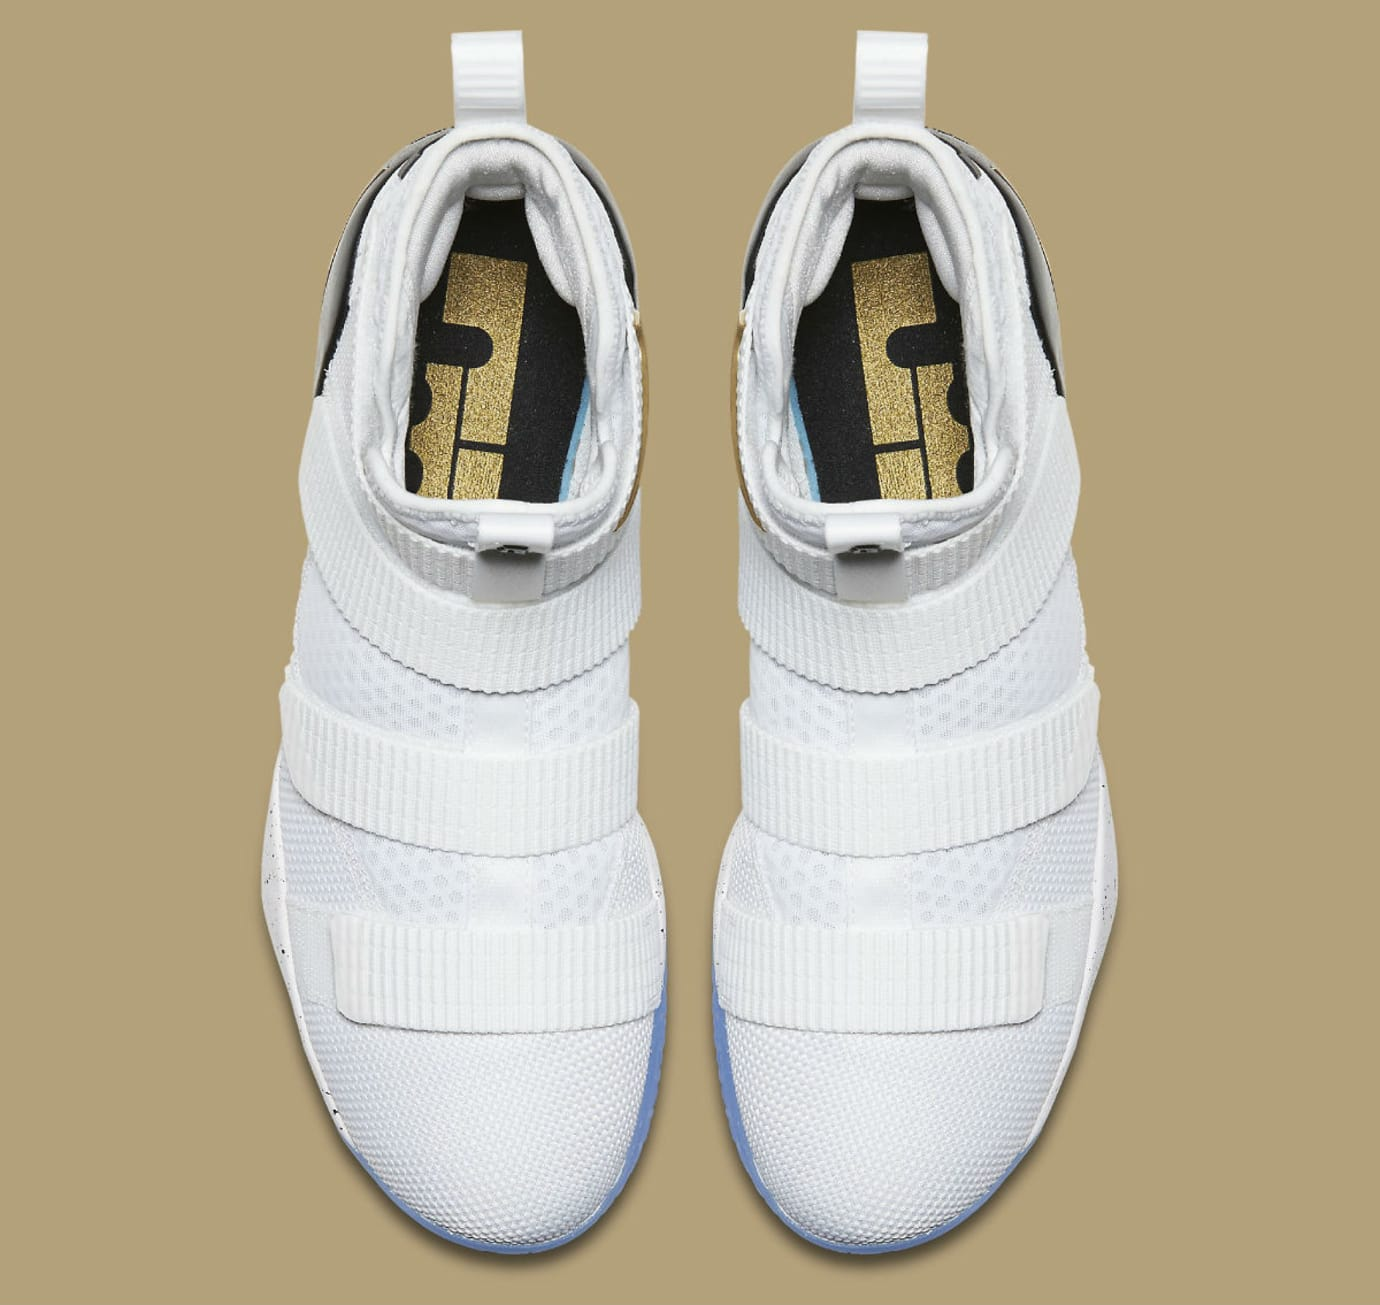 b04a5ed4e8a5 Nike LeBron Soldier 11 White Gold Black Release Date 897644-101 ...